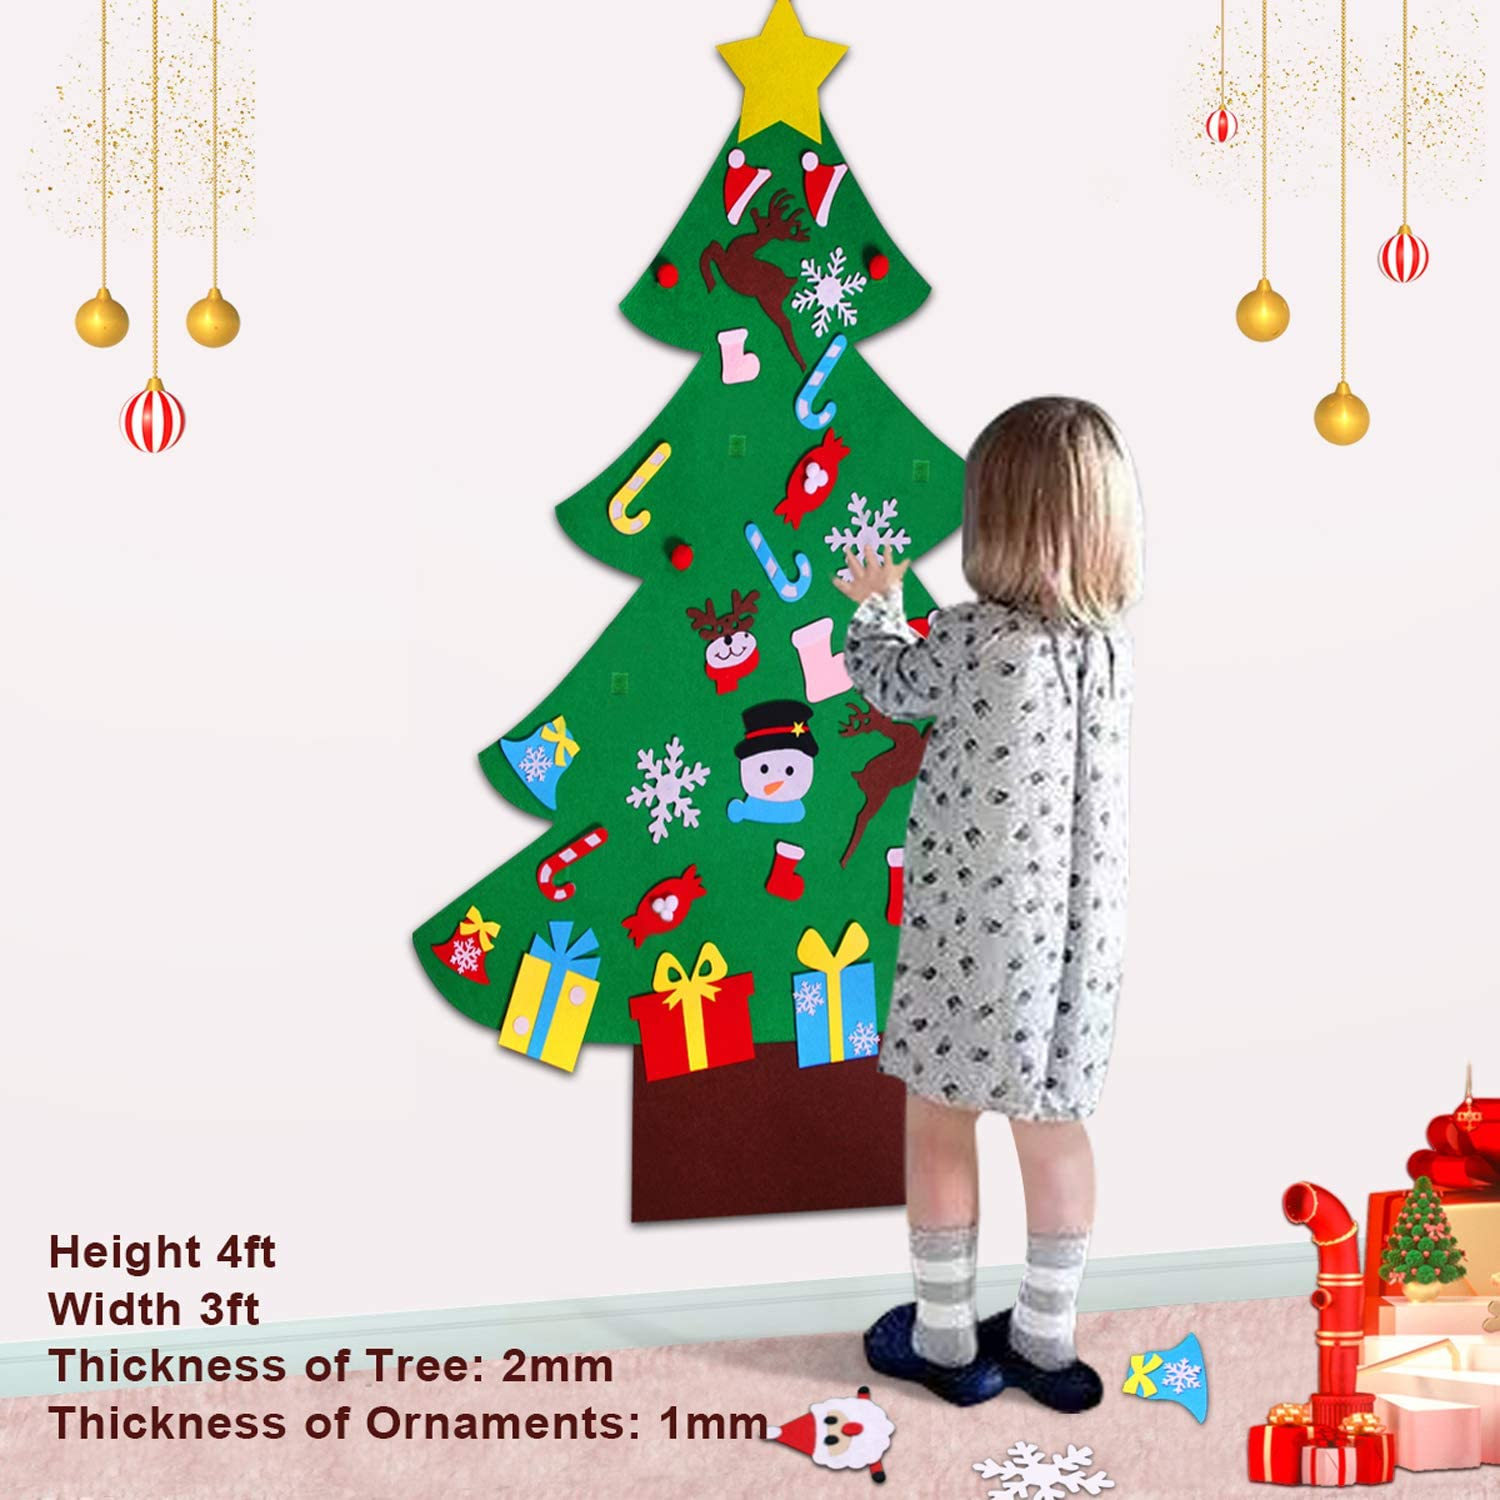 Party Birthday Festival Jupitoo Felt Christmas Tree Felt Toddler Toy Wall Decor with 33 Ornament Kids Felt Christmas Tree Kit Wall Hanging Decorations for Christmas New Year